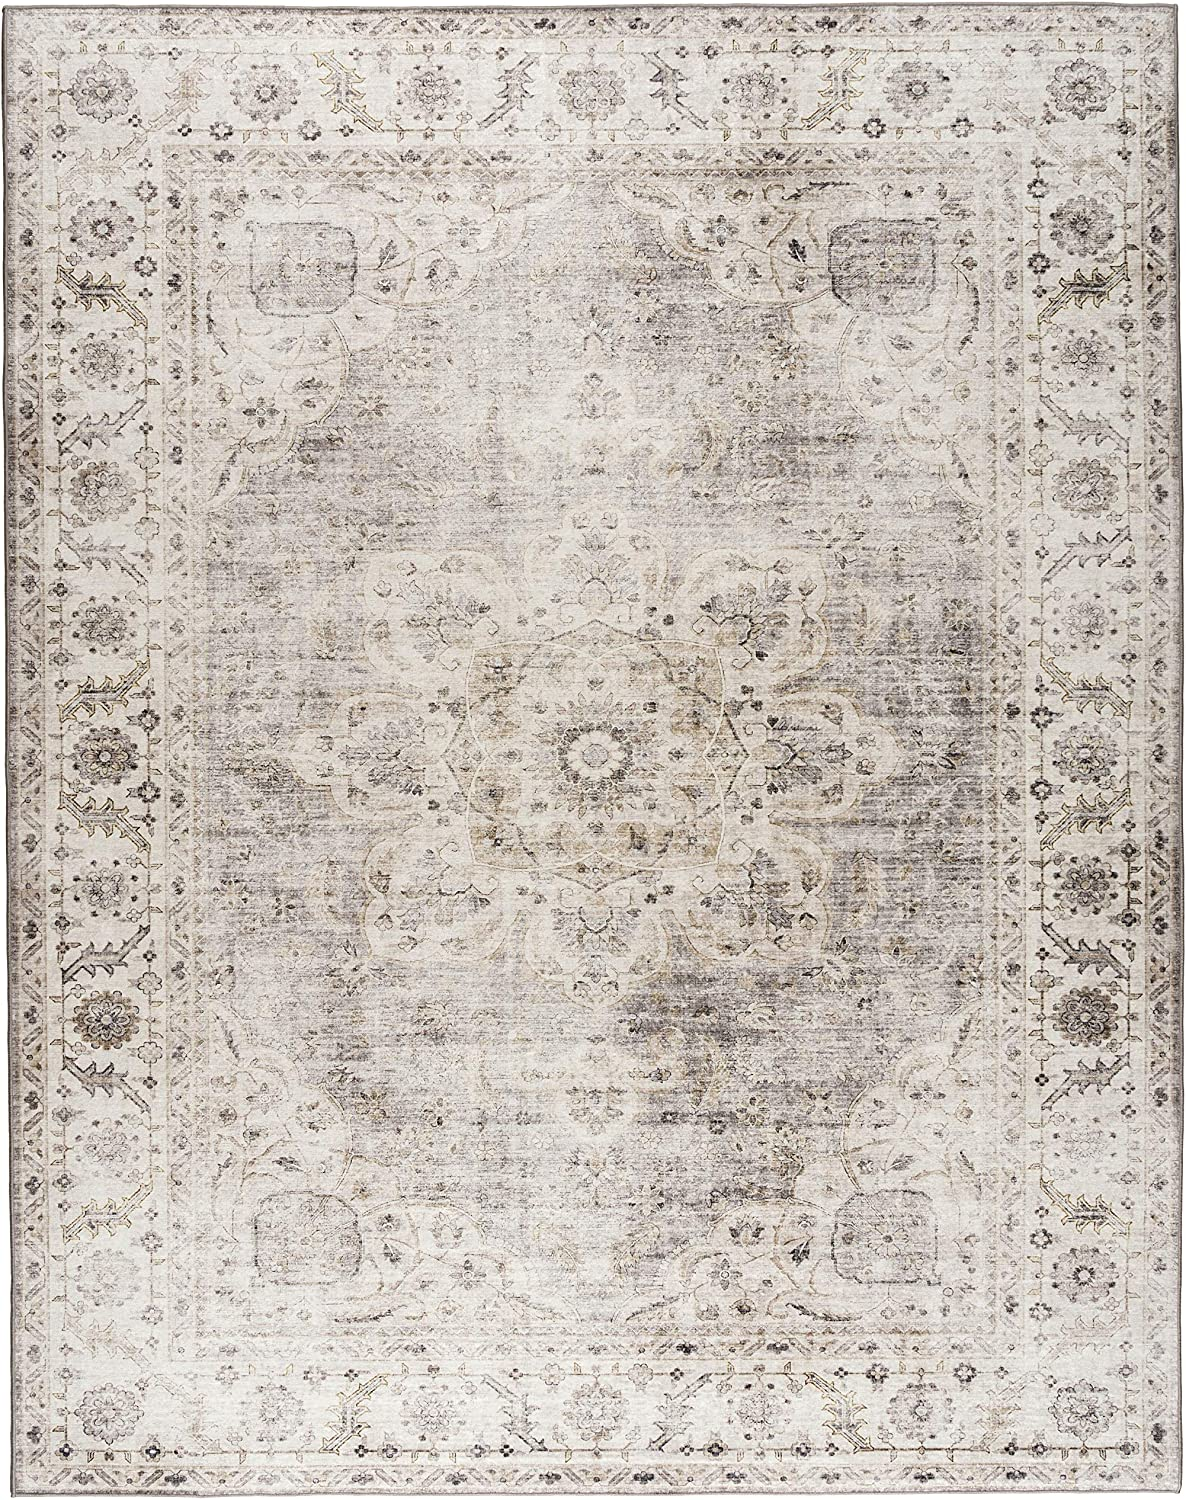 ReaLife Machine Washable Rug Translated Super Special SALE held - Eco-F Resistant Non-Shed Stain